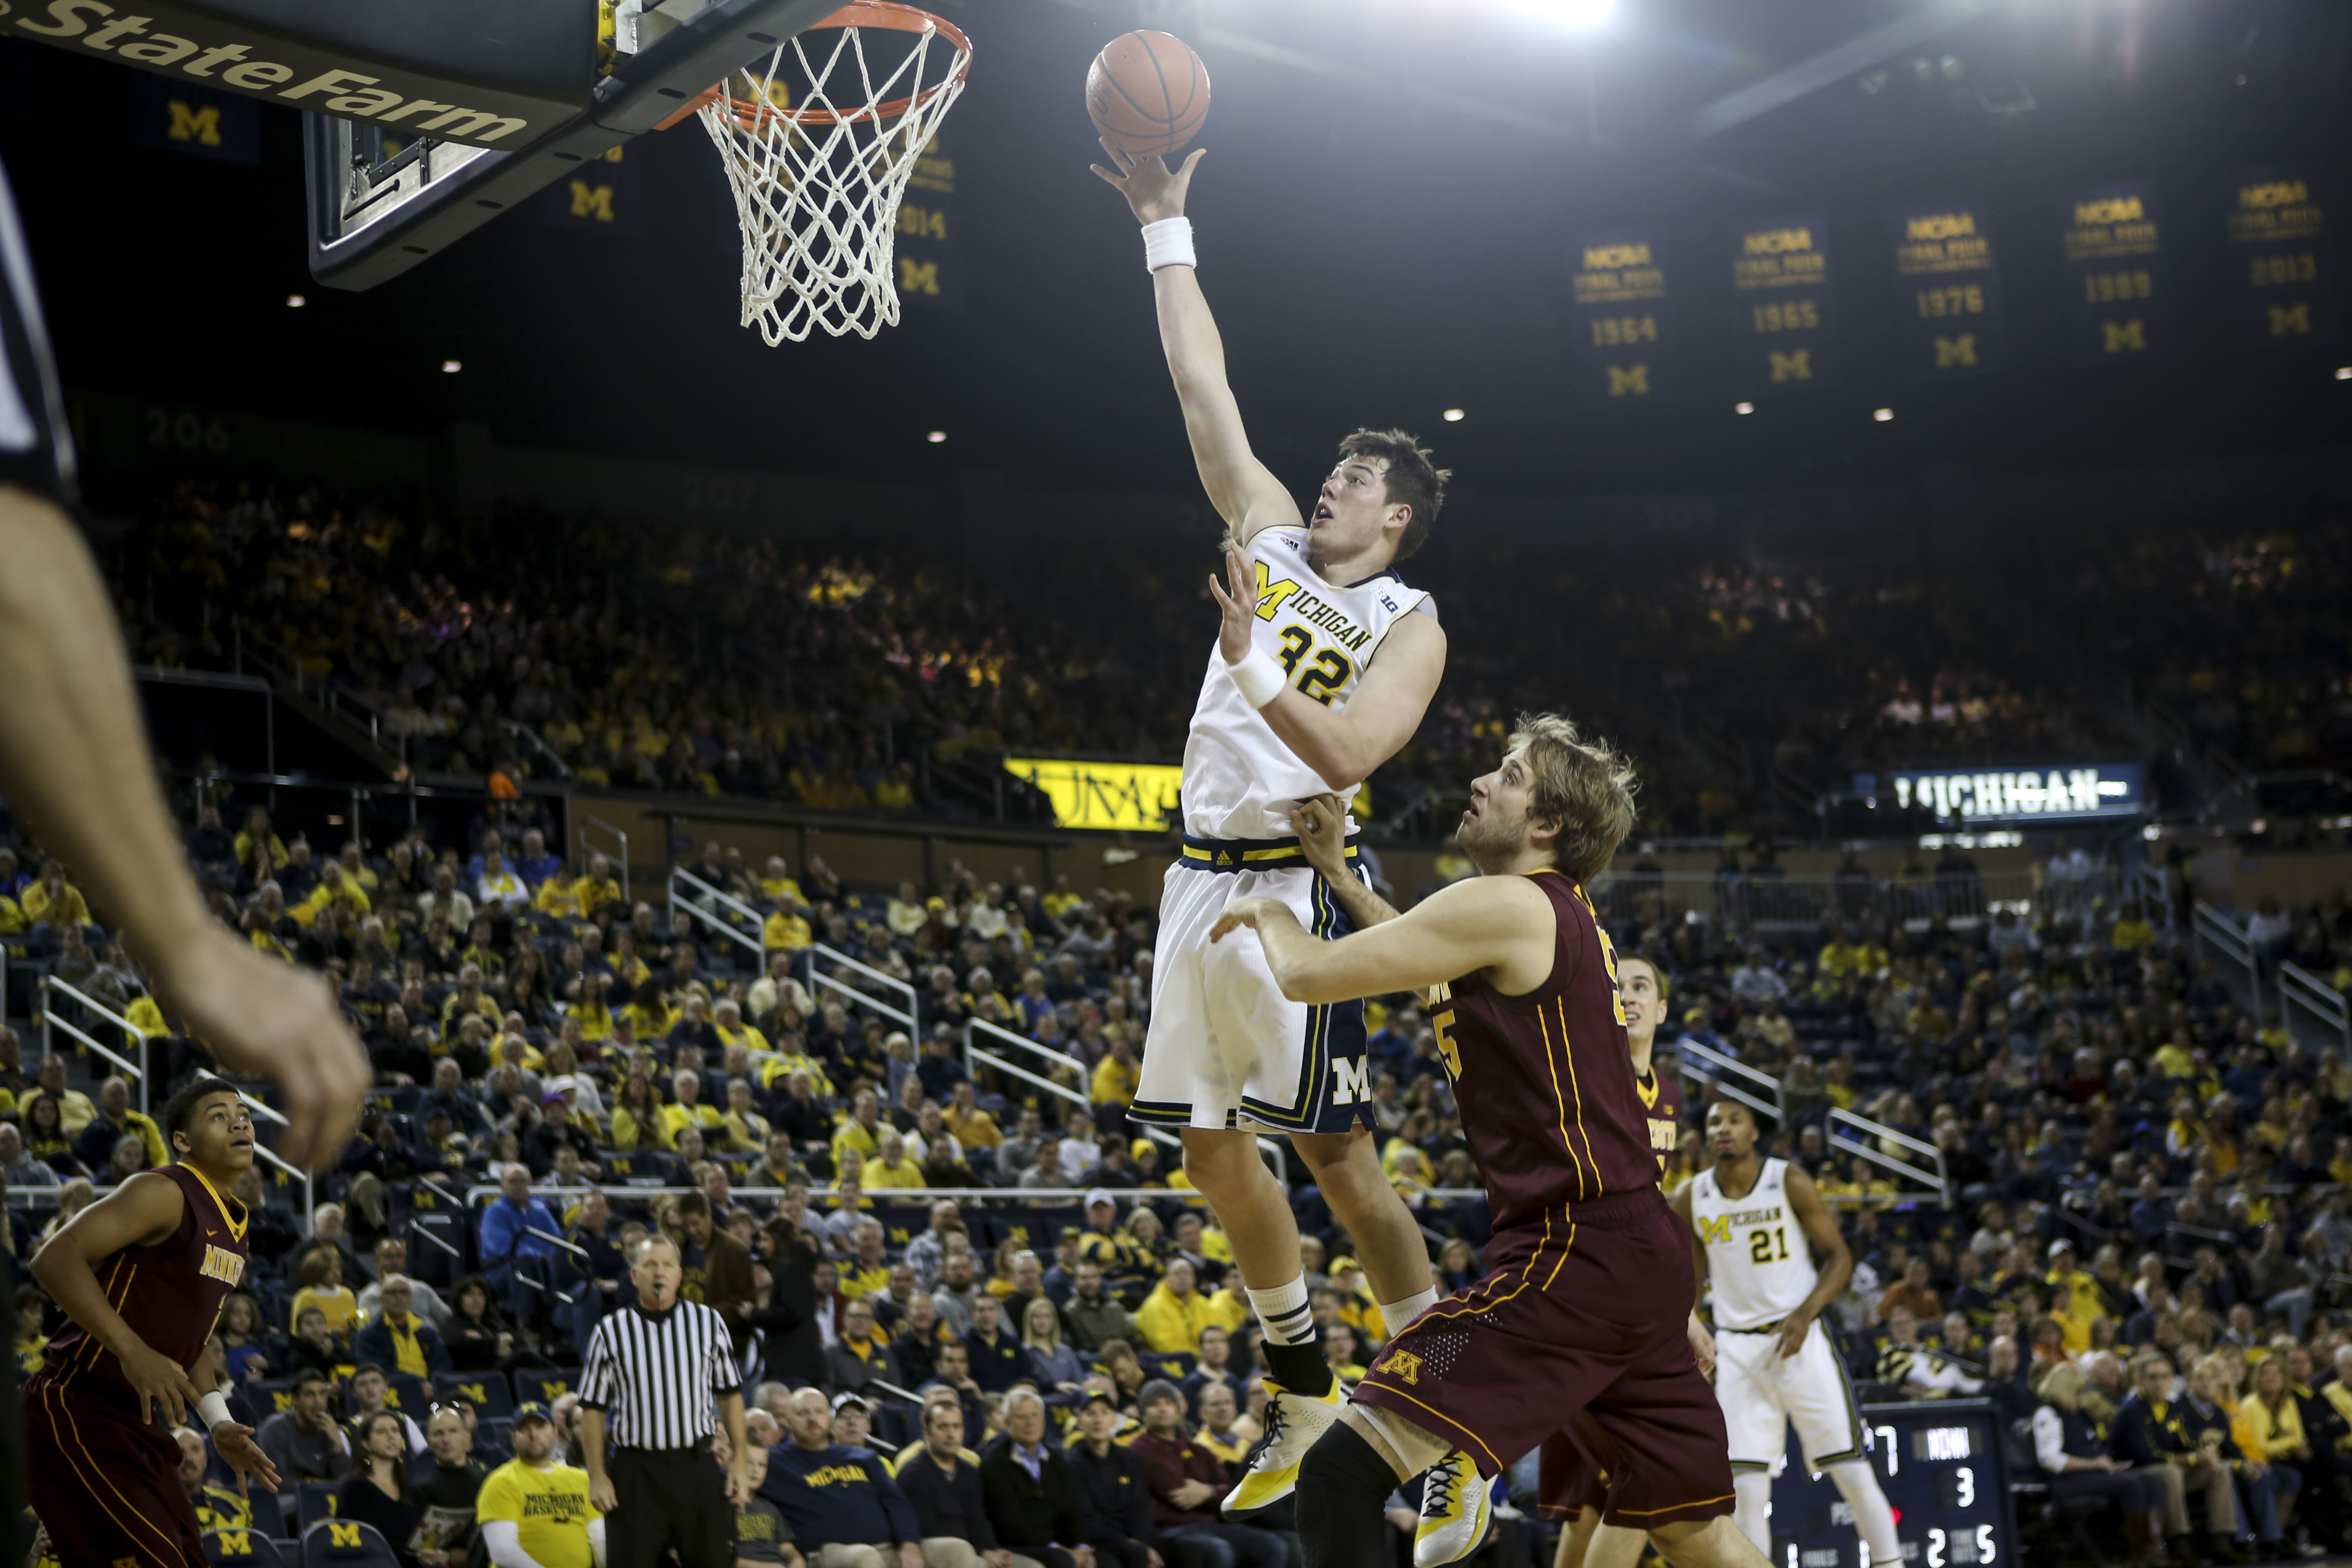 Michigan 62, Minnesota 57 – #5